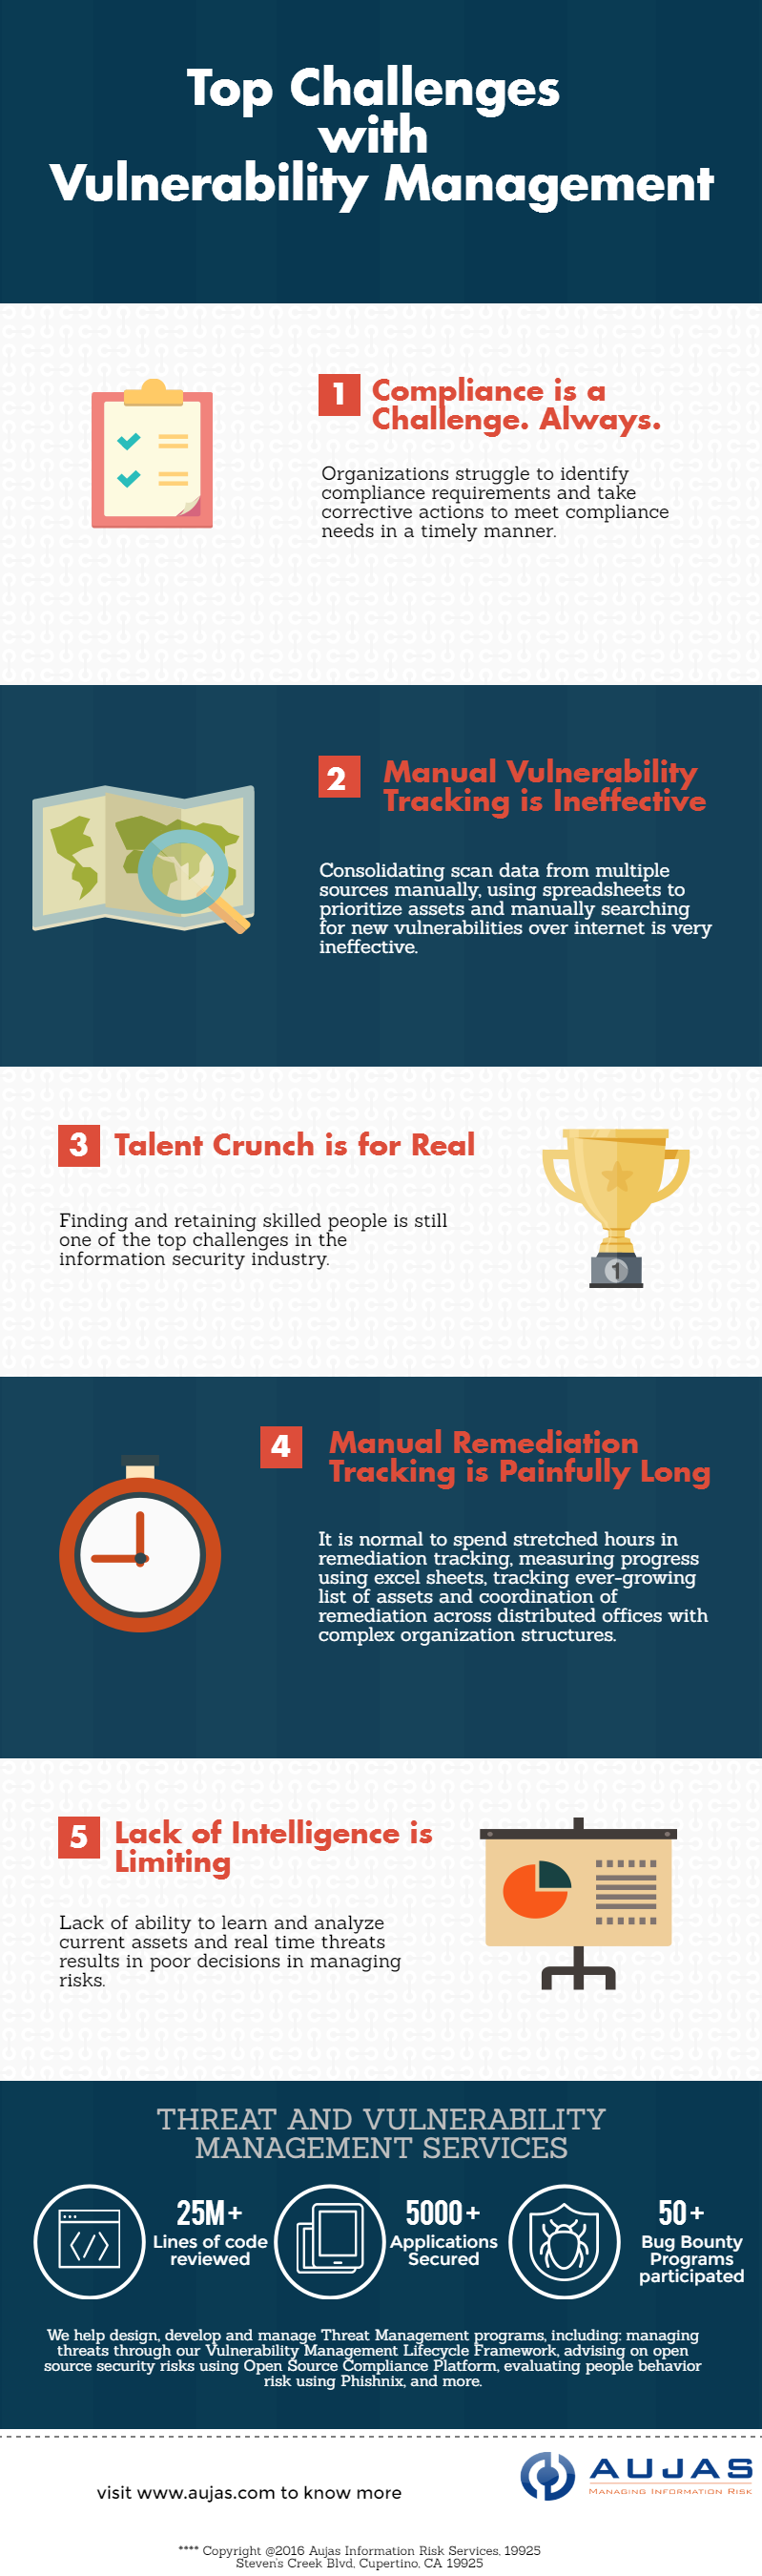 top-challenges-with-vulnerability-management-infographic-1.png